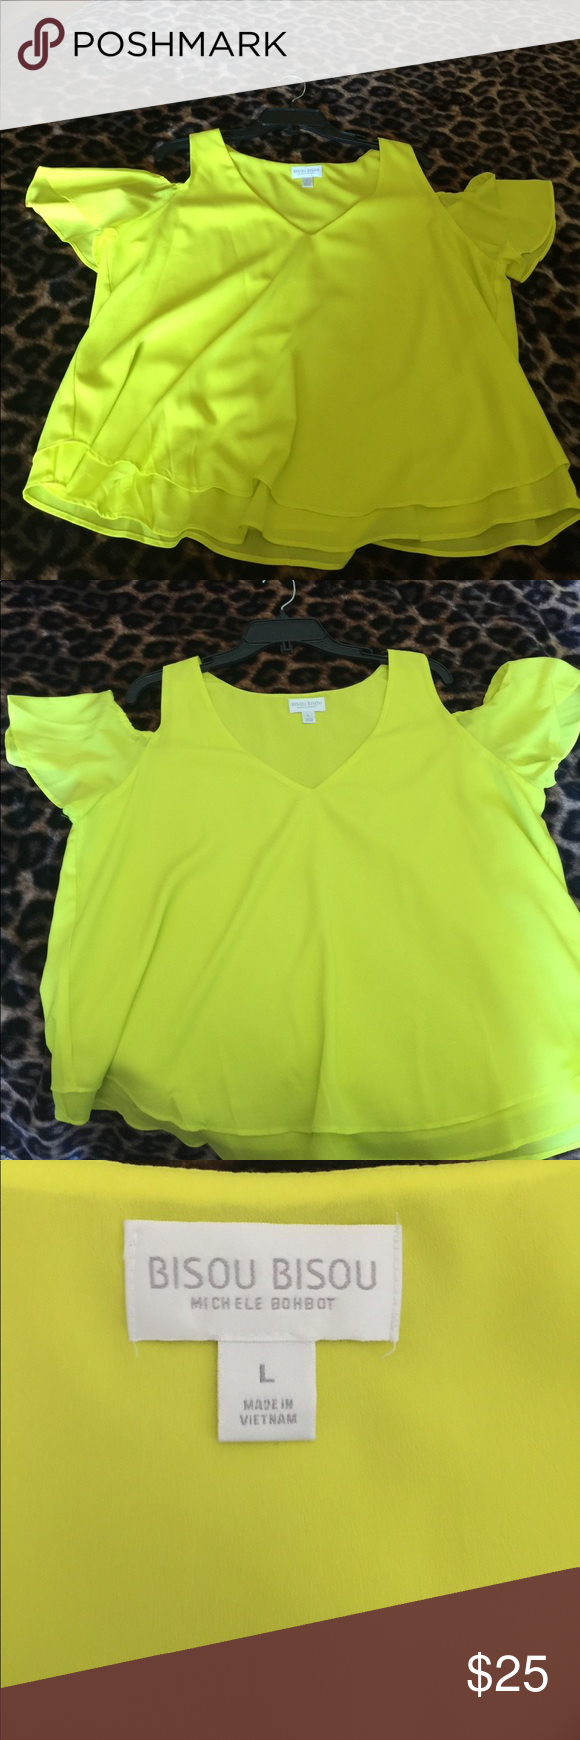 Line green cold shoulder blouse Super cute cold shoulder blouse Tops Blouses